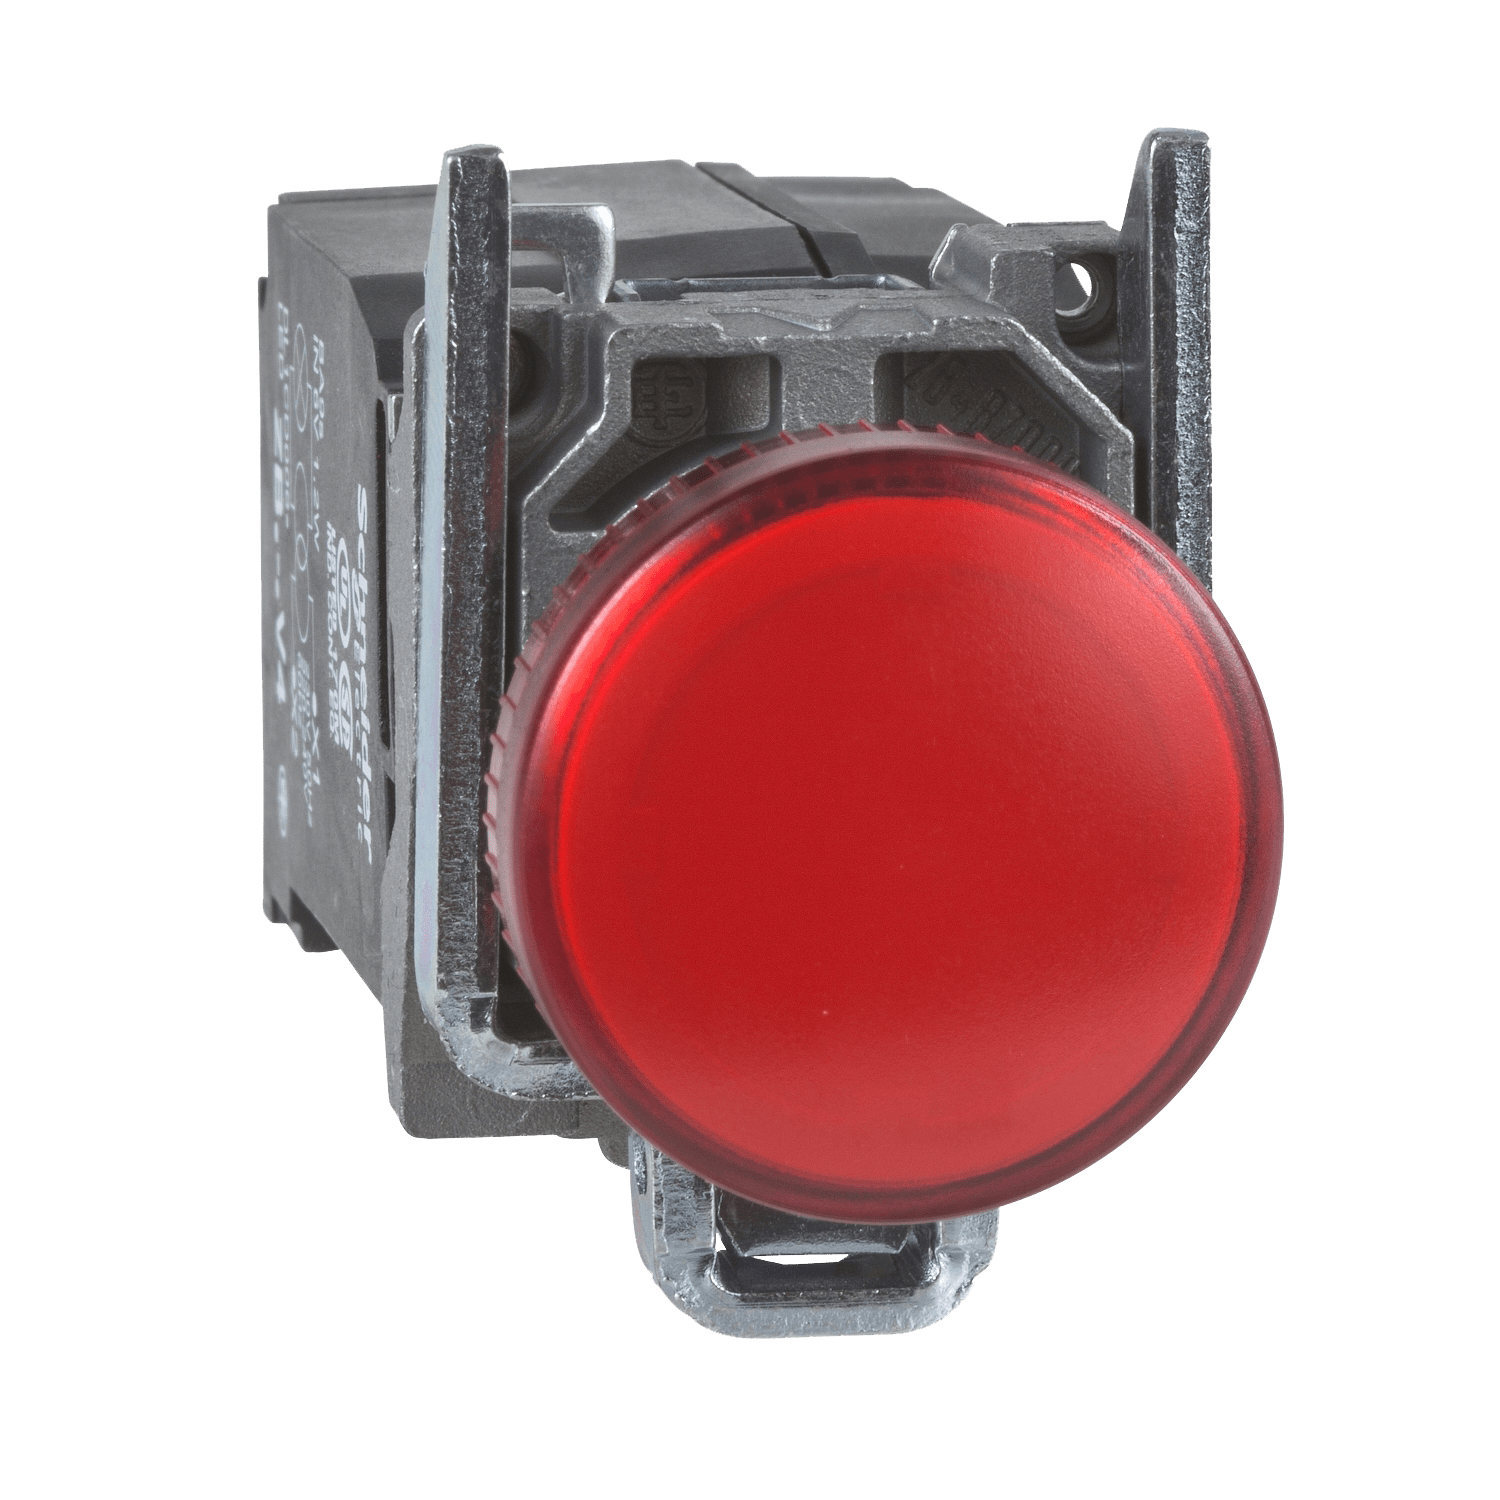 Harmony 22mm Pushbutton by Schneider Electric